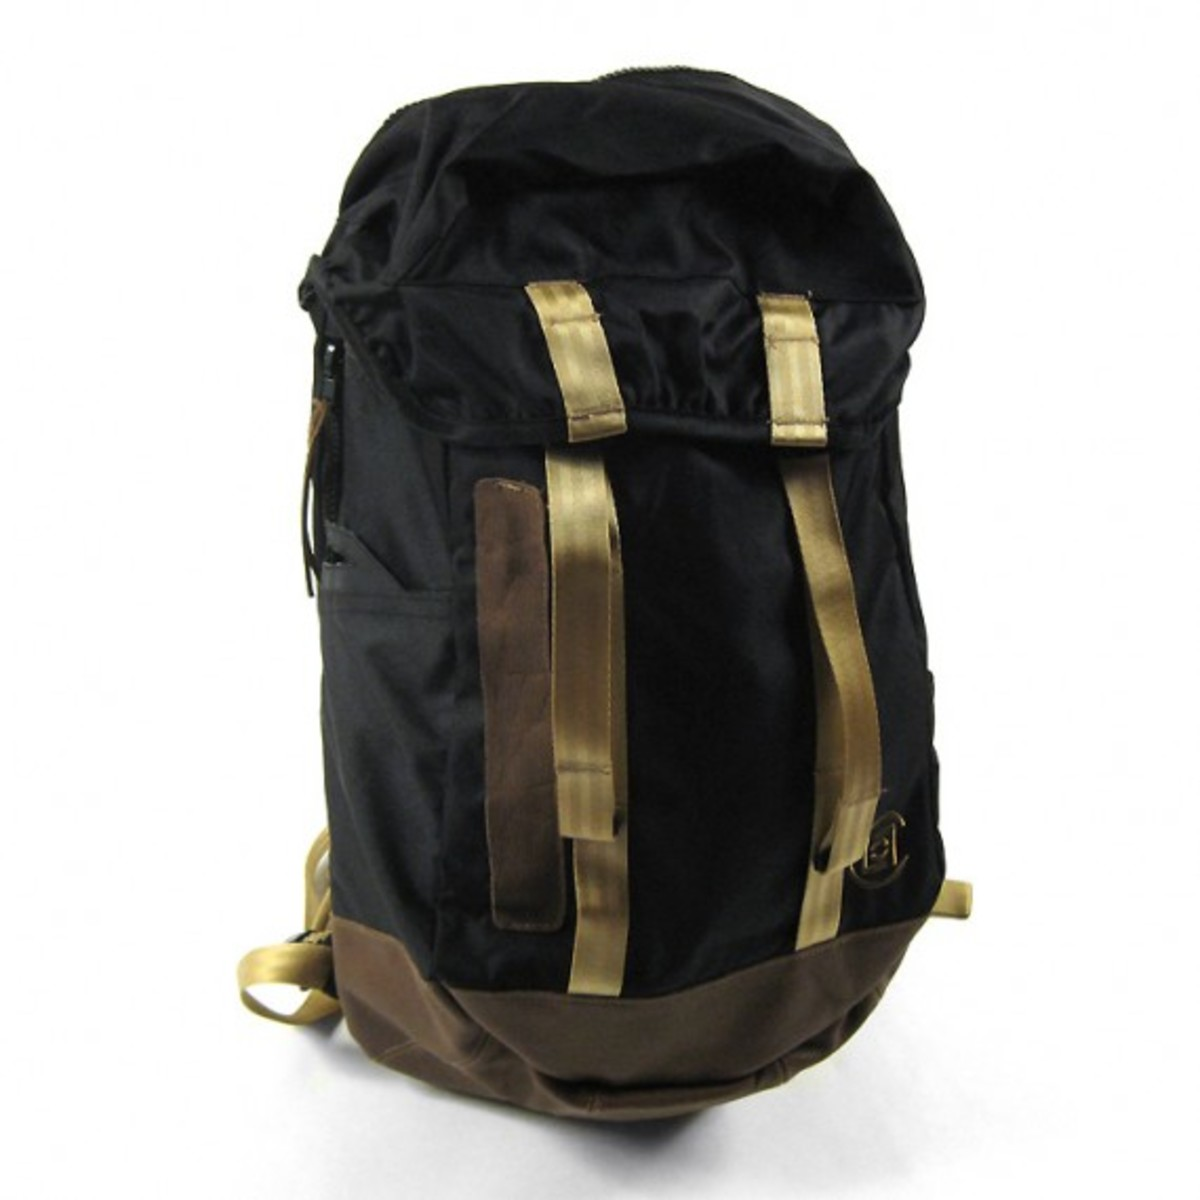 clot-outdoor-backpack-3